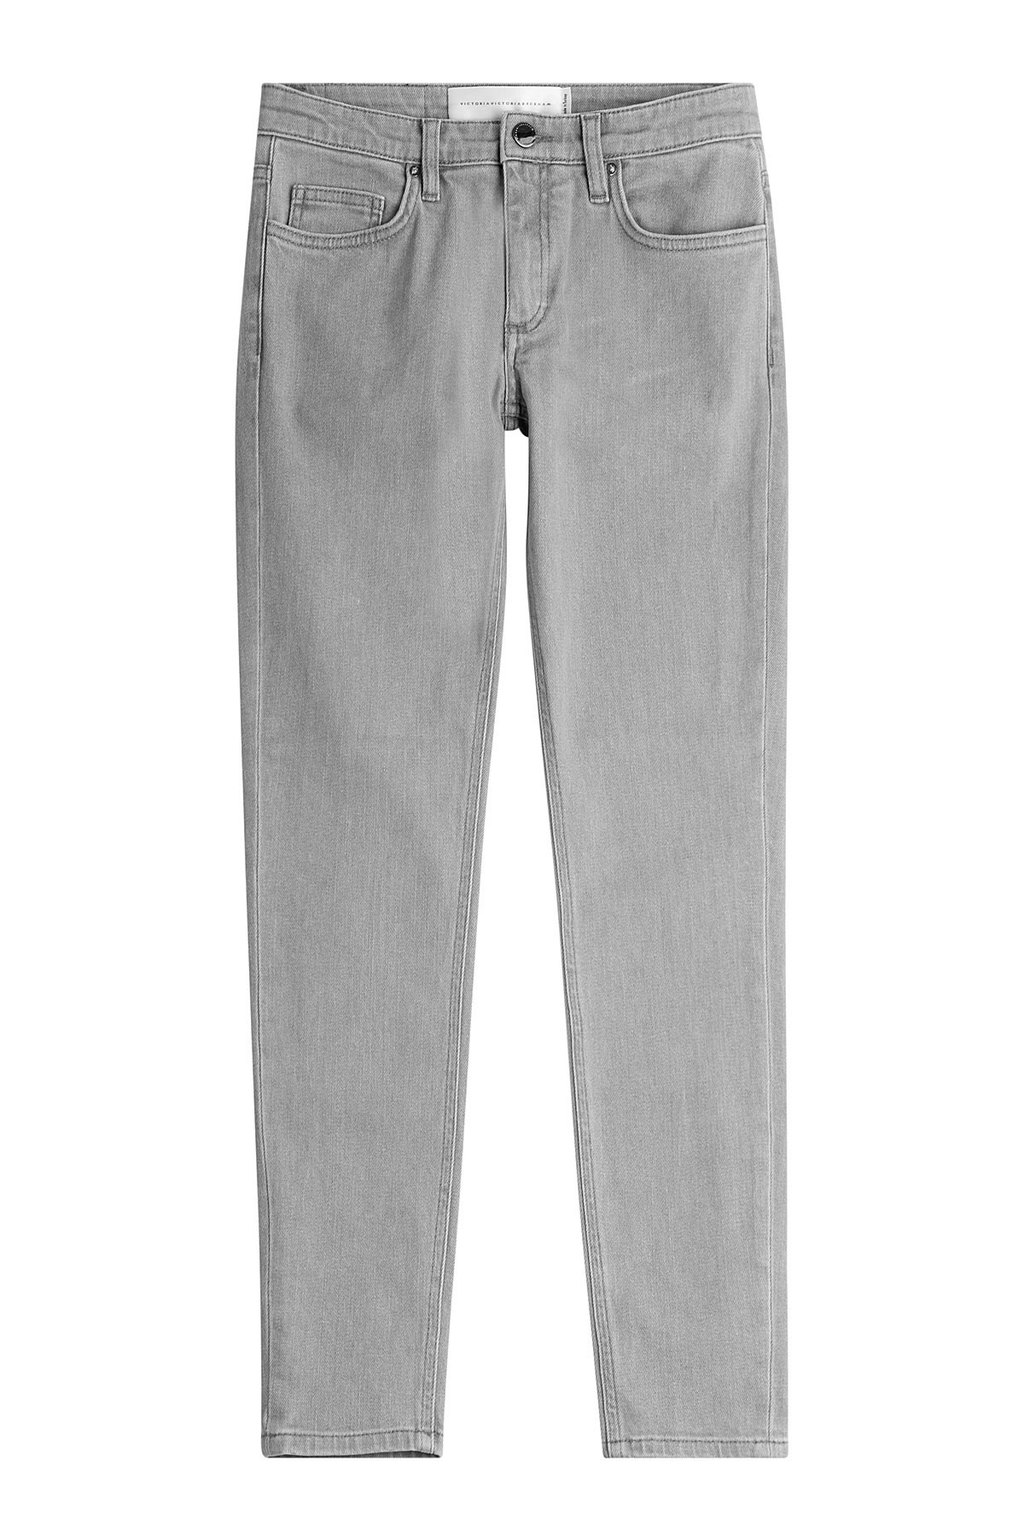 Skinny Jeans Grey - style: skinny leg; length: standard; pattern: plain; pocket detail: traditional 5 pocket; waist: mid/regular rise; predominant colour: light grey; occasions: casual; fibres: cotton - 100%; texture group: denim; pattern type: fabric; season: a/w 2015; wardrobe: highlight